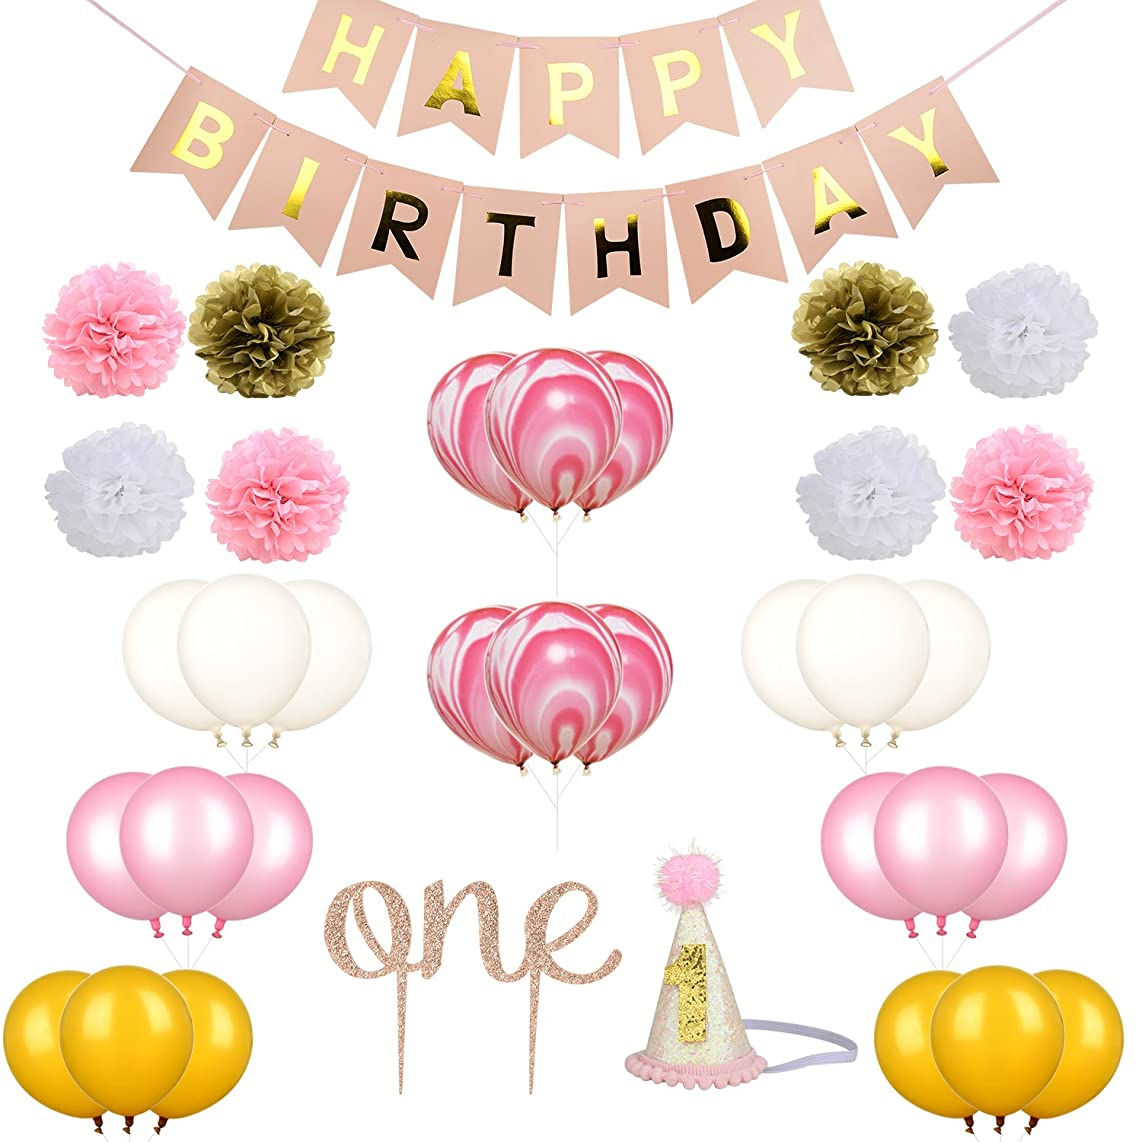 Zhenhui 1st First Birthday Girl Decorations Pink Bday Party Supplies Set Including Happy Birthday Banner,One Cake Topper,1st Birthday Cone Hat,24 Pcs Balloons,8 Pcs Tissue Paper Pom Poms (Set of 35)